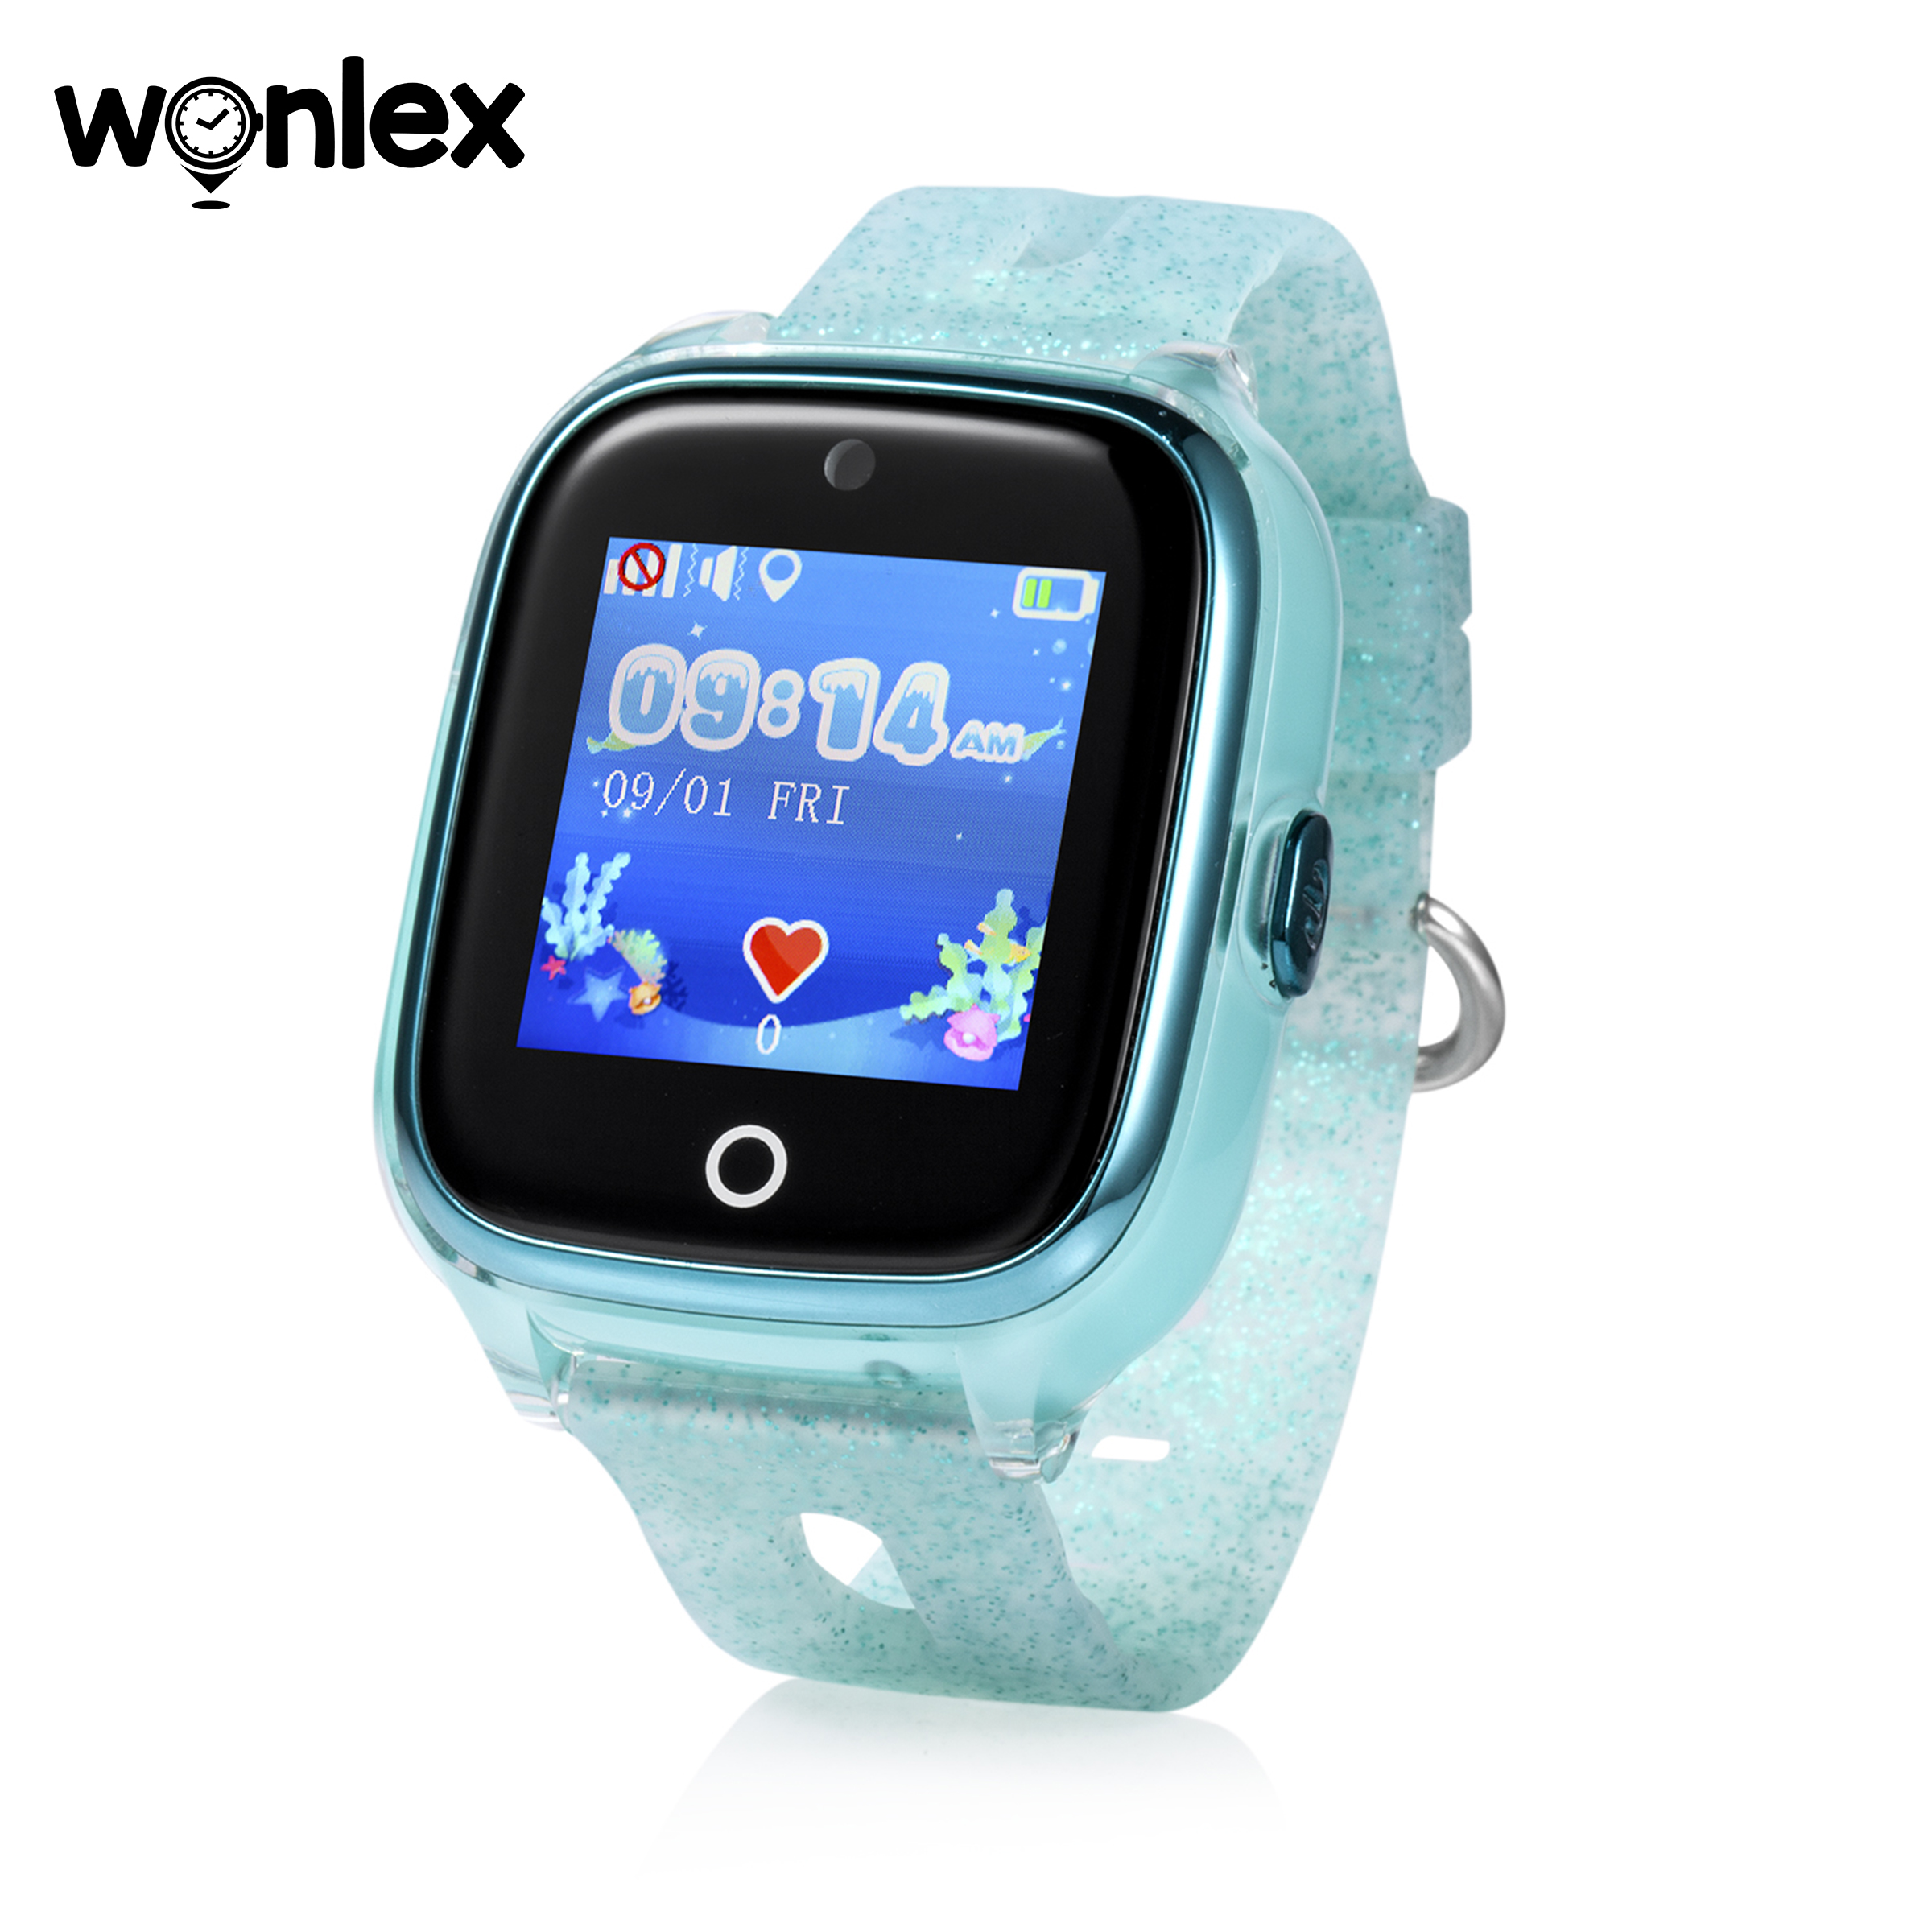 Wonlex Kids GPS WiFi Smart Watch Waterproof IP67 Smart Clock Kid GPS Positioning SOS Help Anti lost seTracker Support Micro Chat-in Smart Watches from Consumer Electronics on AliExpress